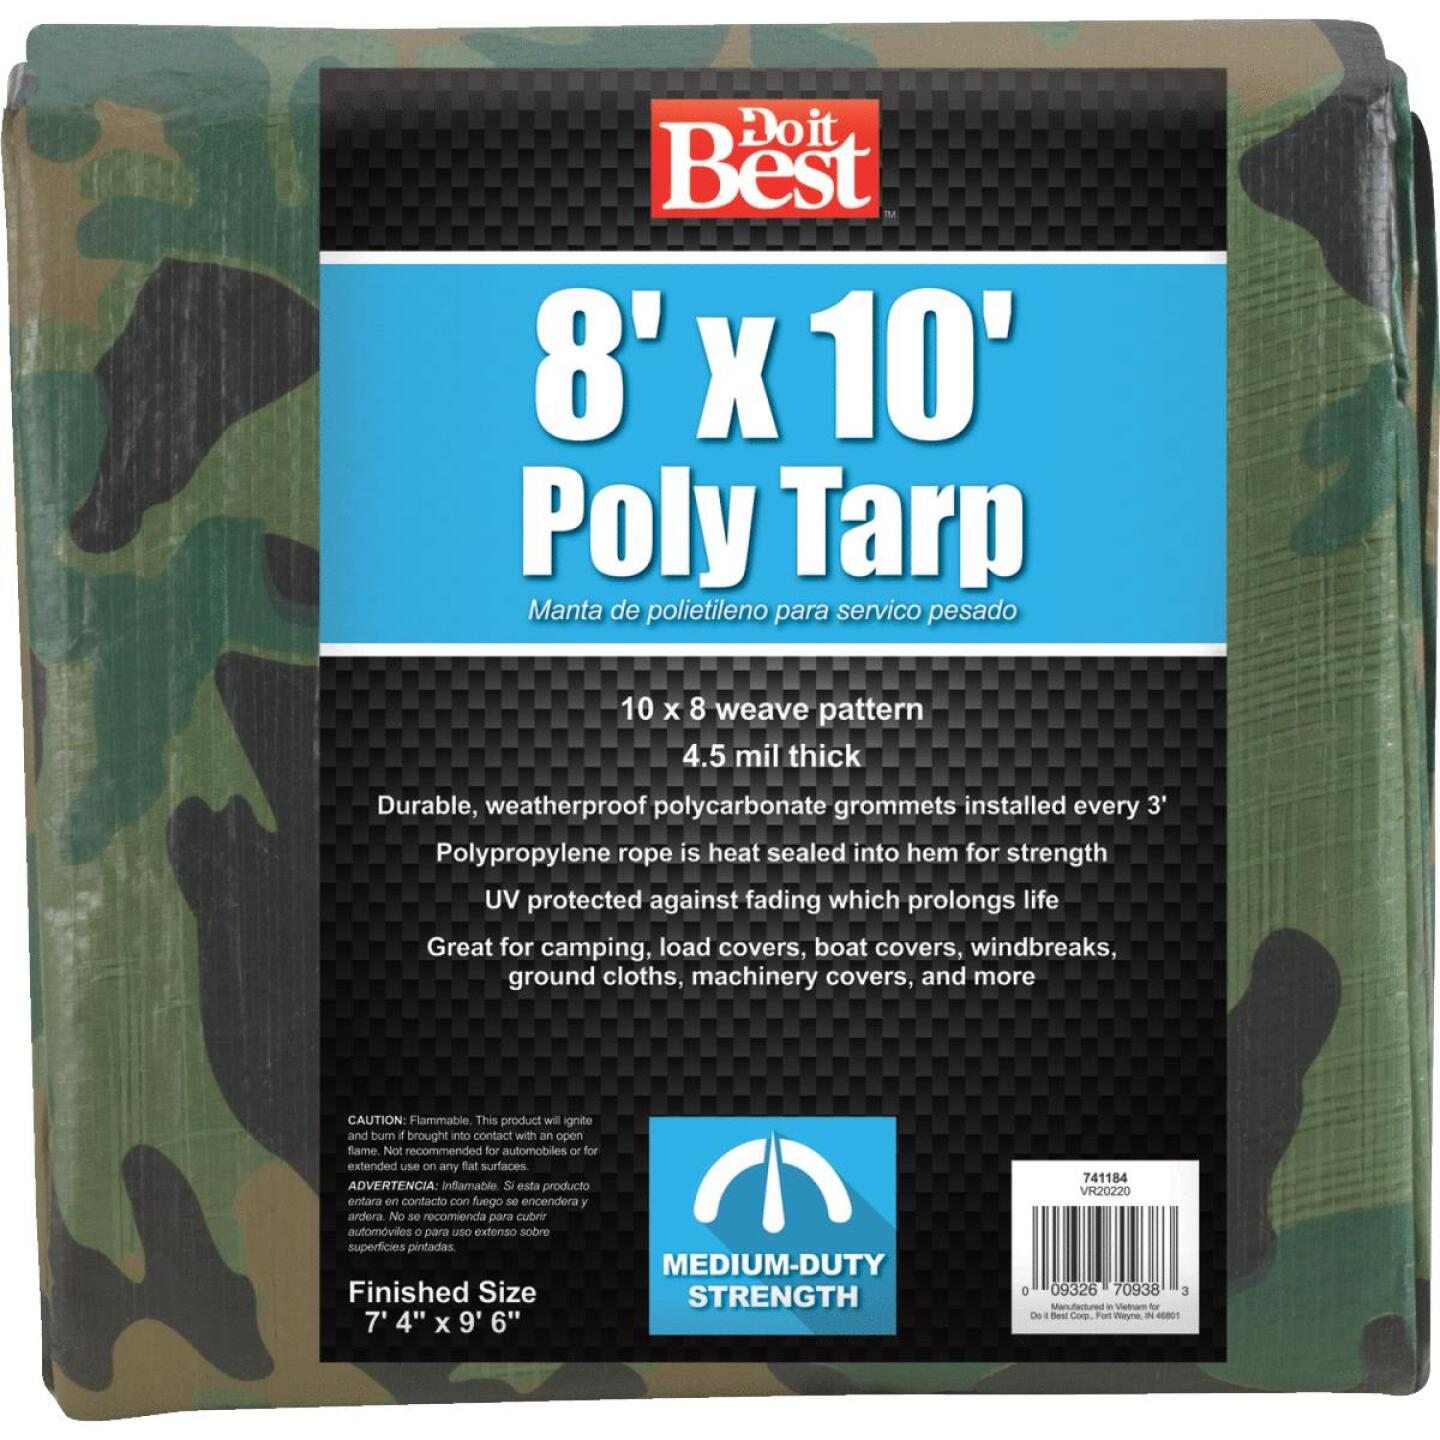 Do it Best Camo Woven 8 Ft. x 10 Ft. Medium Duty Poly Tarp Image 4